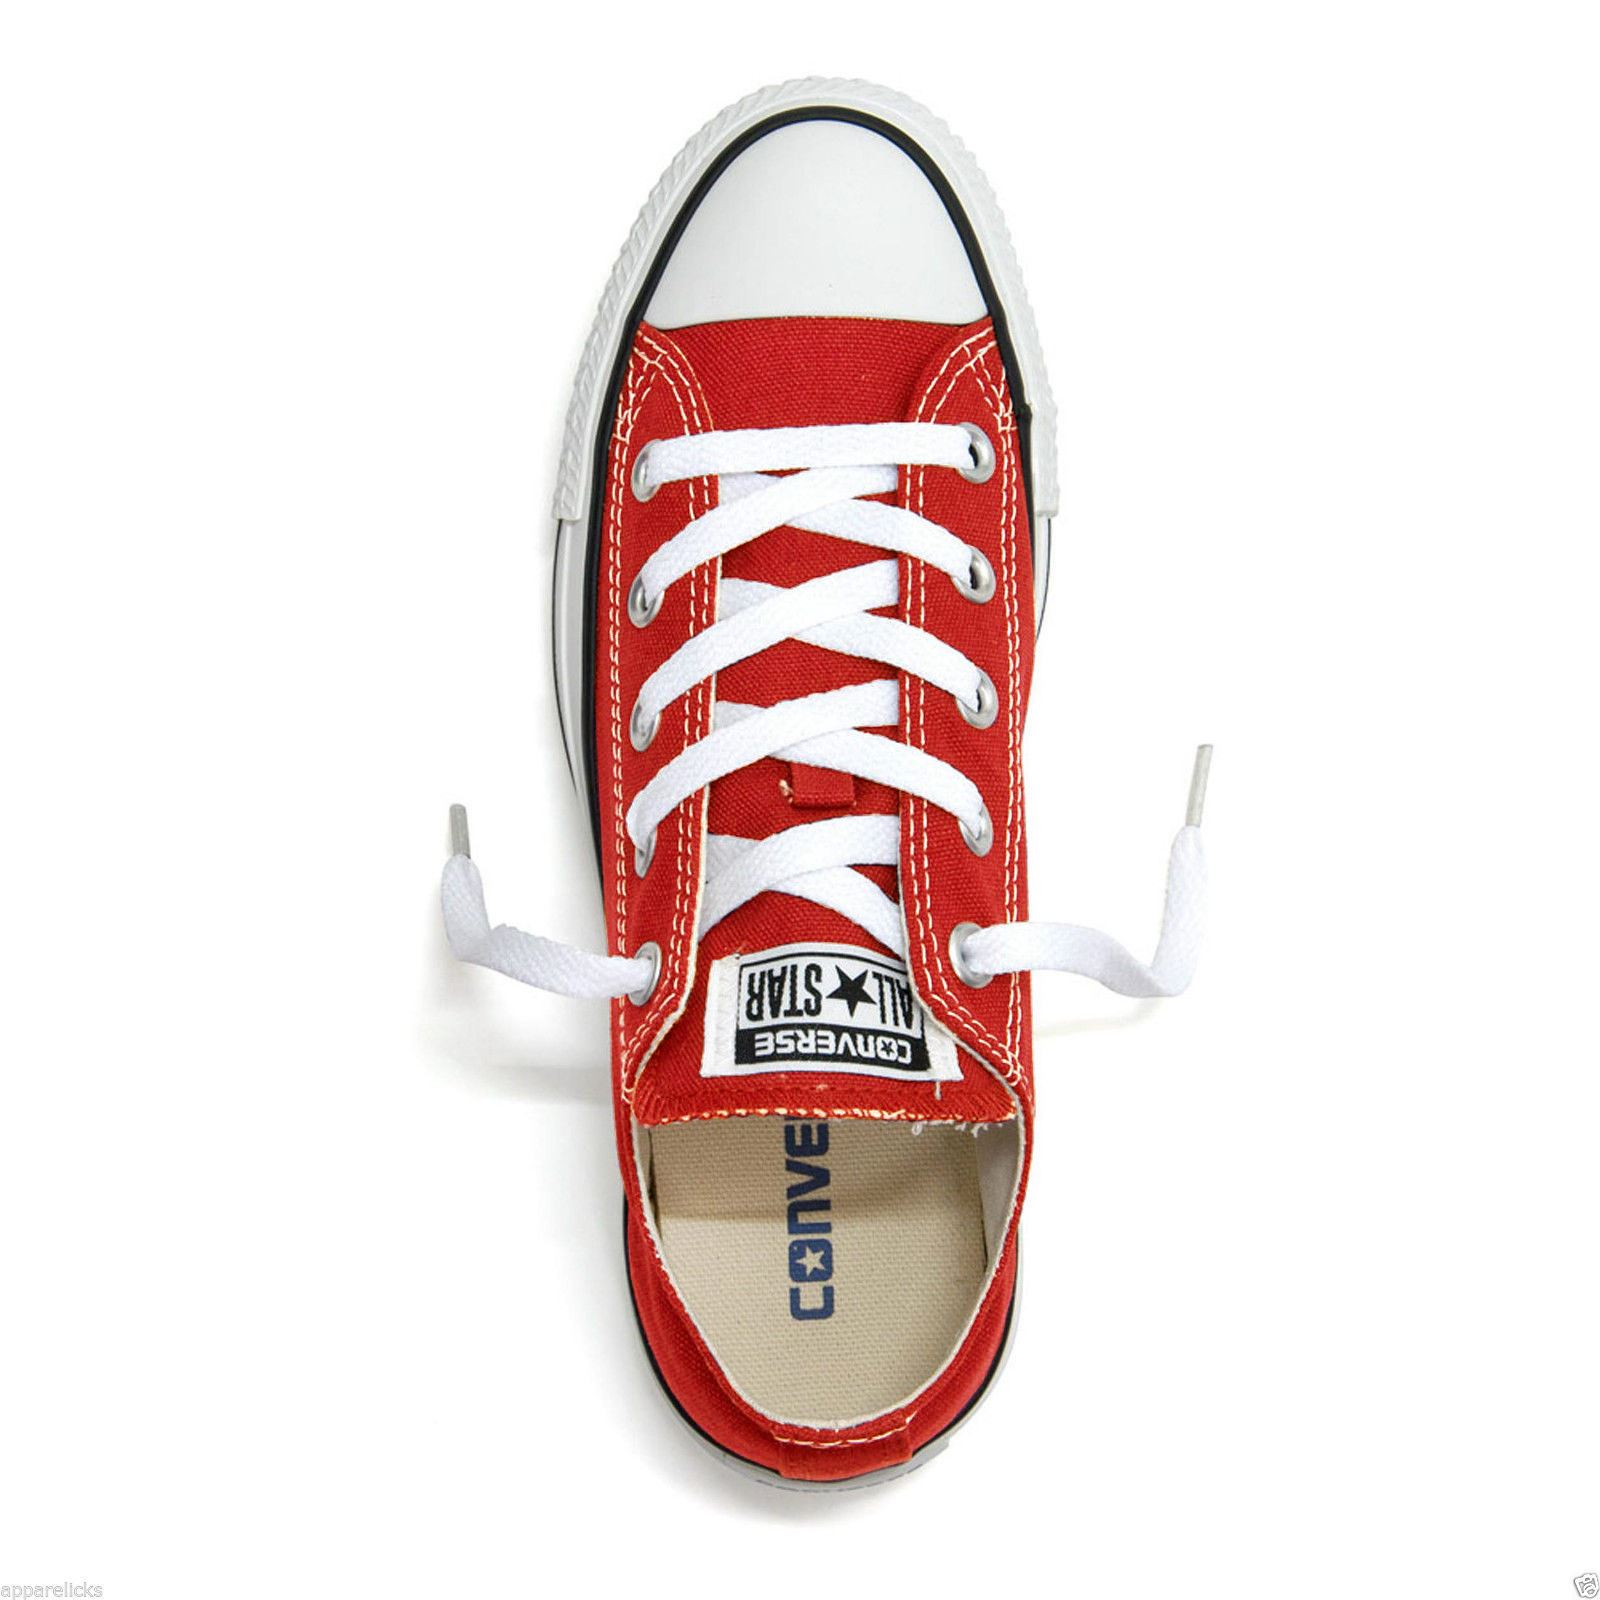 Converse-All-Star-Unisex-Chuck-Taylor-New-Mens-Womens-Low-Tops-Trainers-Pumps thumbnail 27